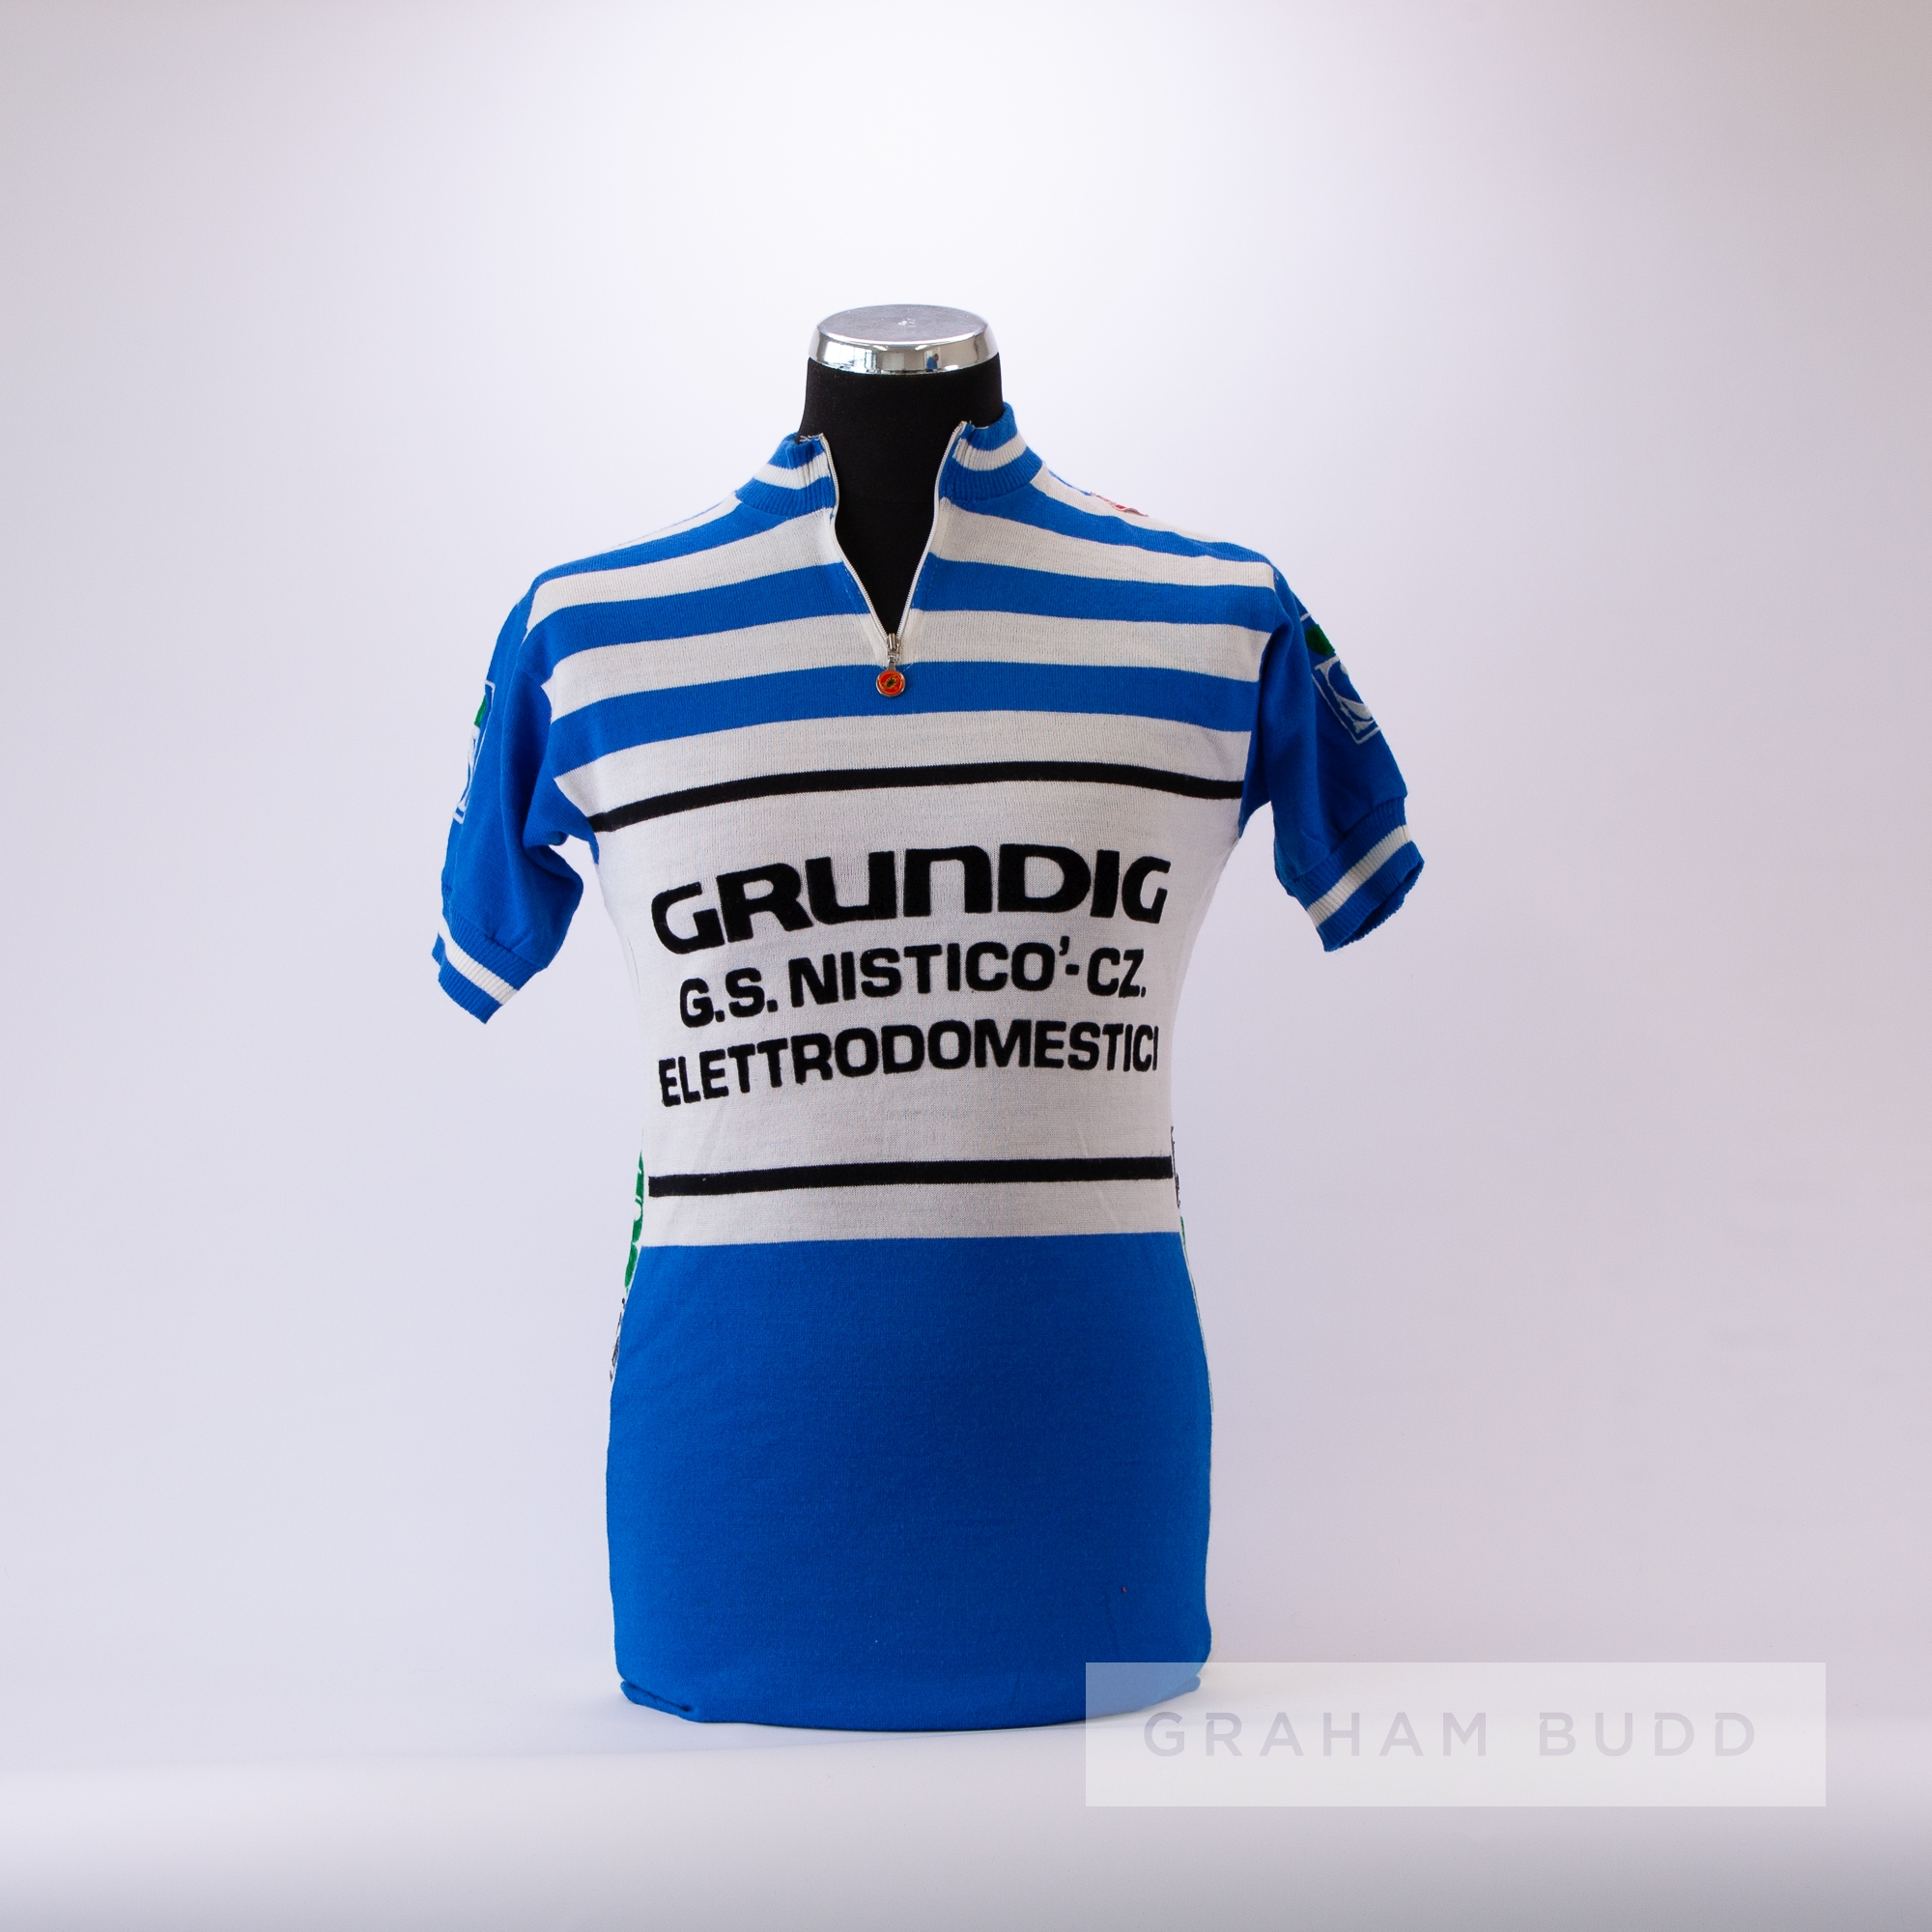 1960s blue and white vintage Castelli Grundig Cycling race jersey, scarce, wool and acrylic short-